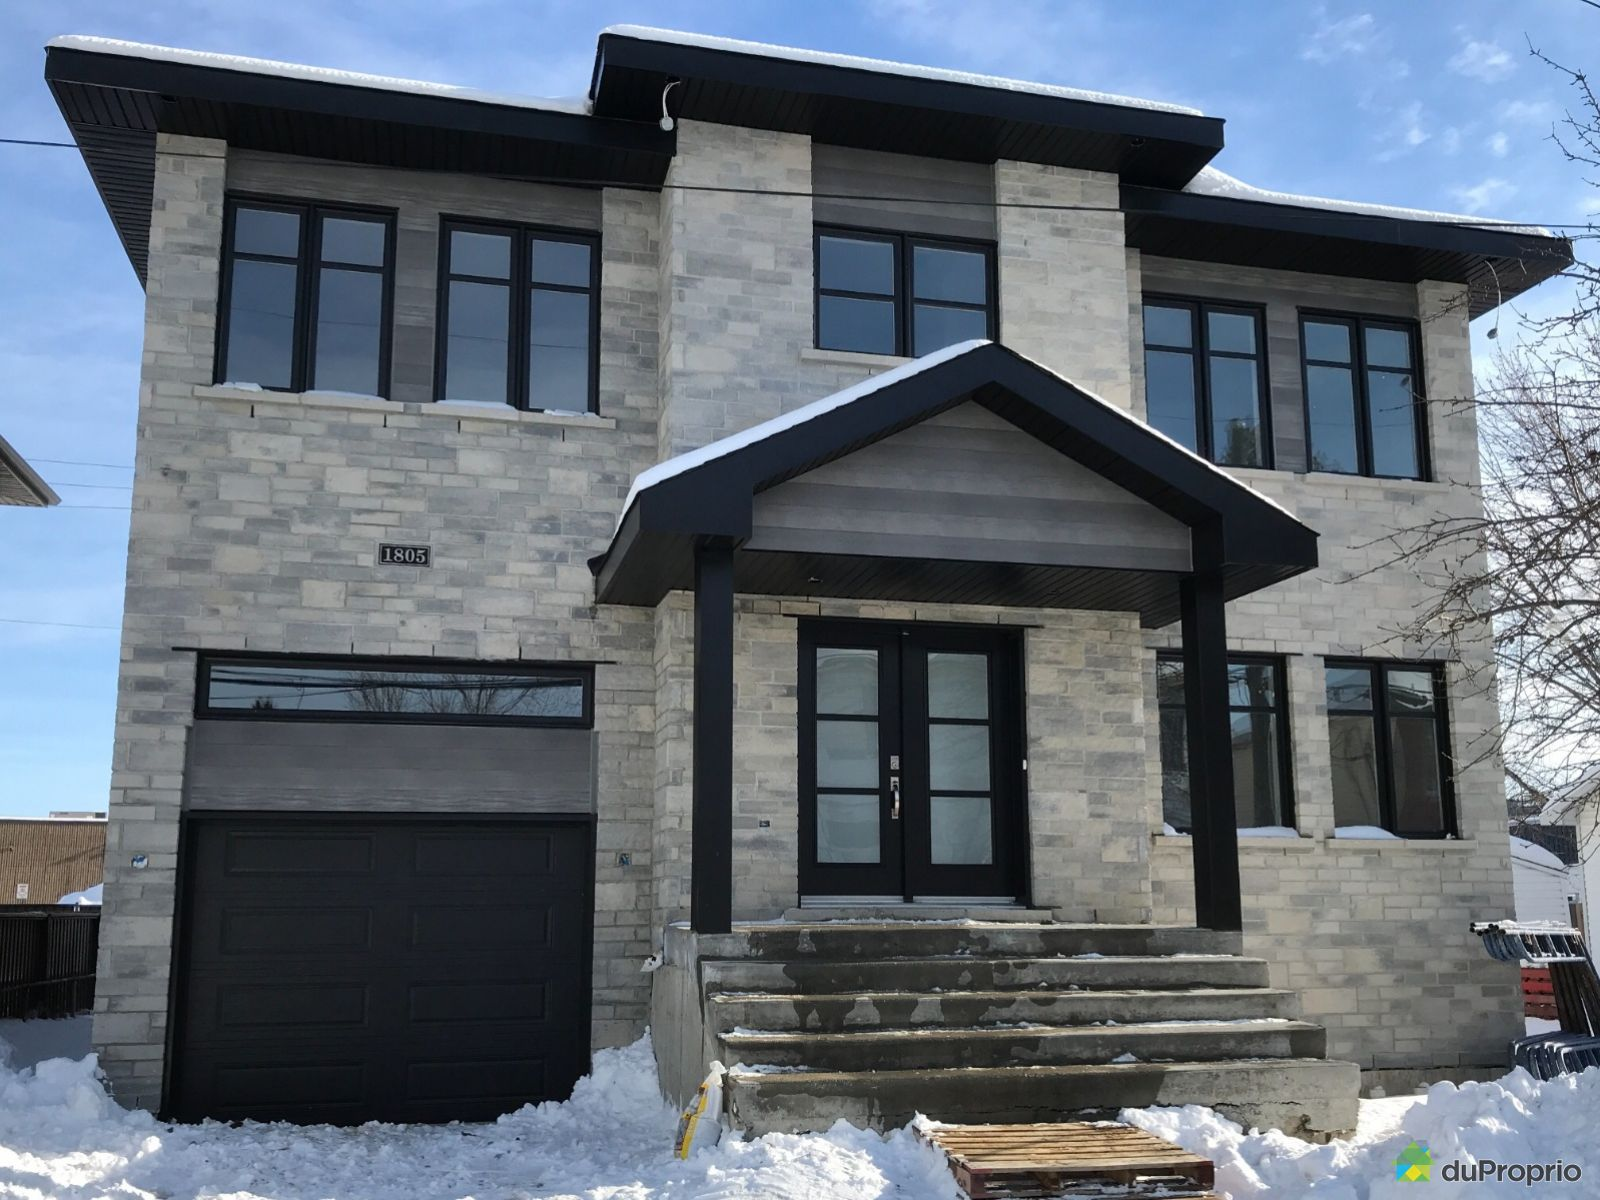 1805 rue Albert - Par les Habitations de Luxe, Brossard for sale